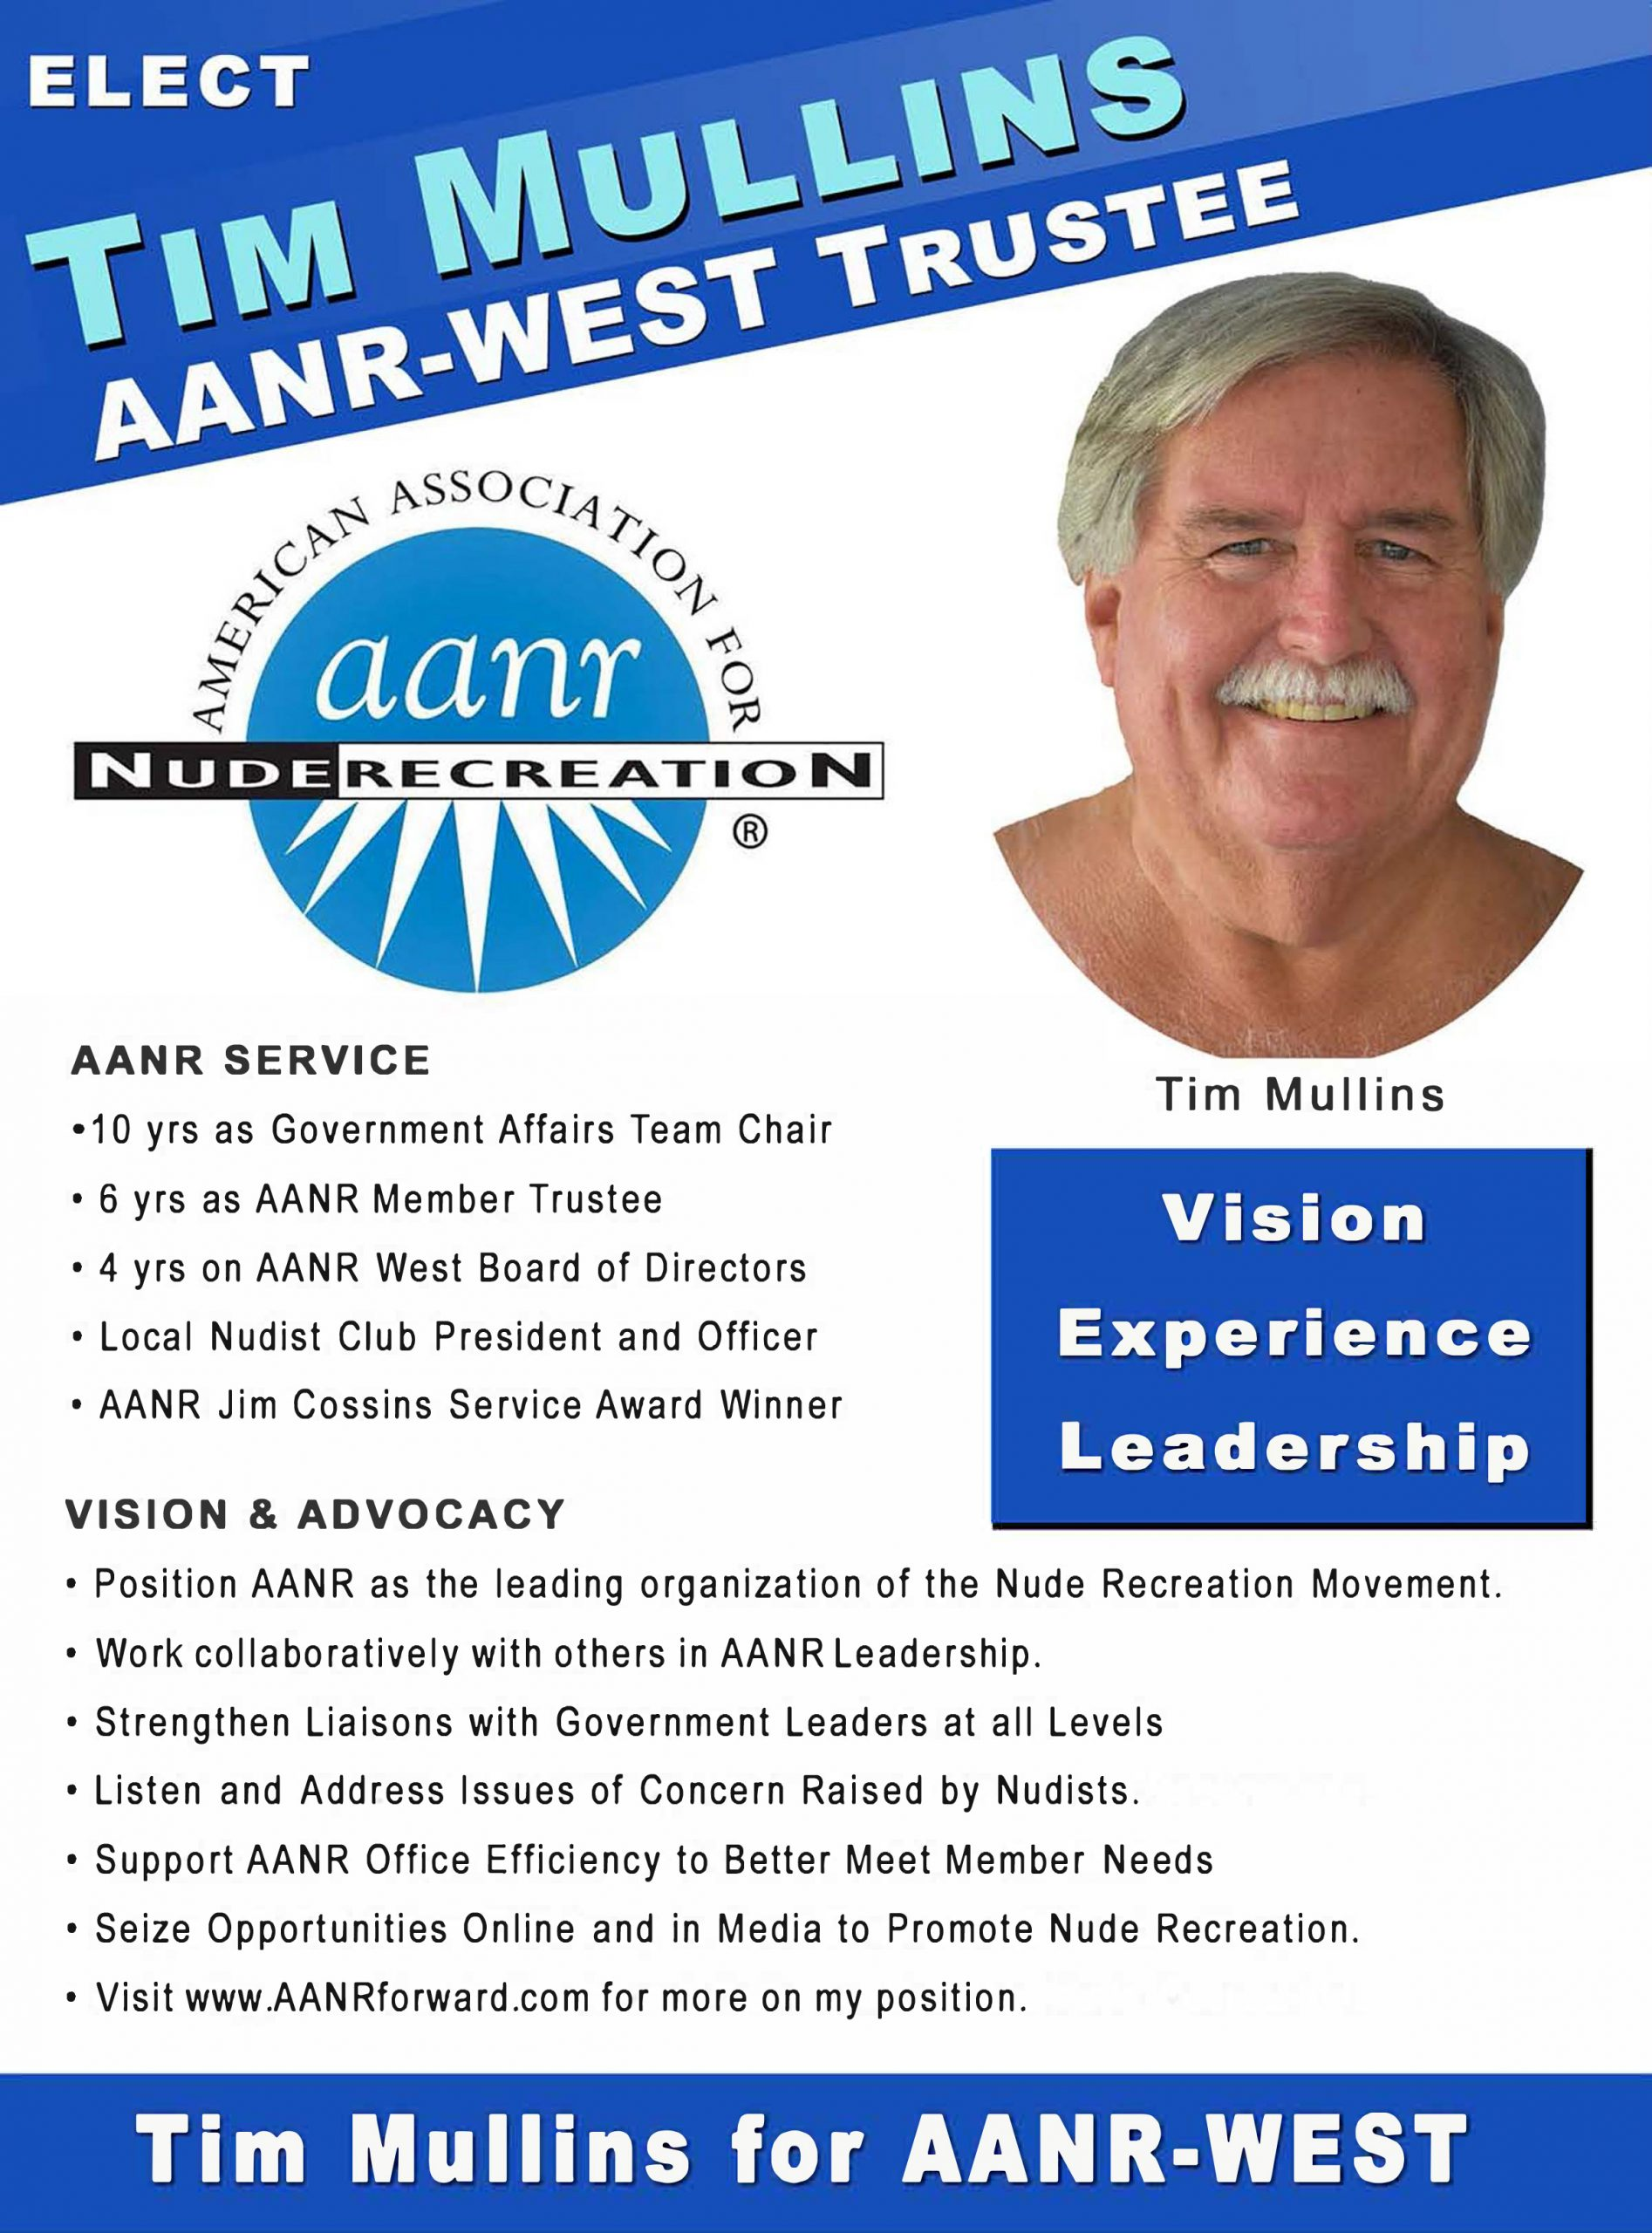 Tim Mullins for AANR West